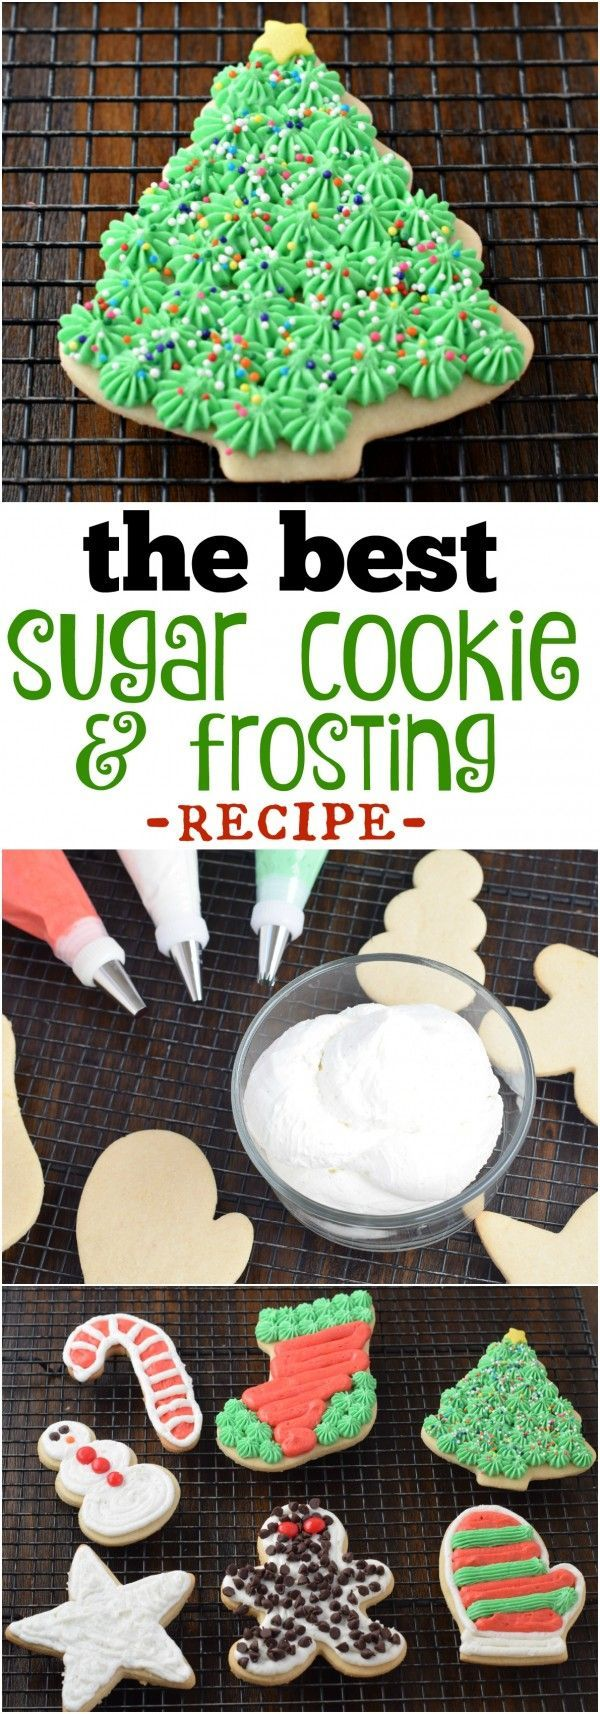 Looking for the BEST sugar cookie cut out recipe? https://t.co/tirolsdWrw https://t.co/rD1Ojwmuwk Van Nghia Huynh (@nghiavan0375) posted a photo on Twitter